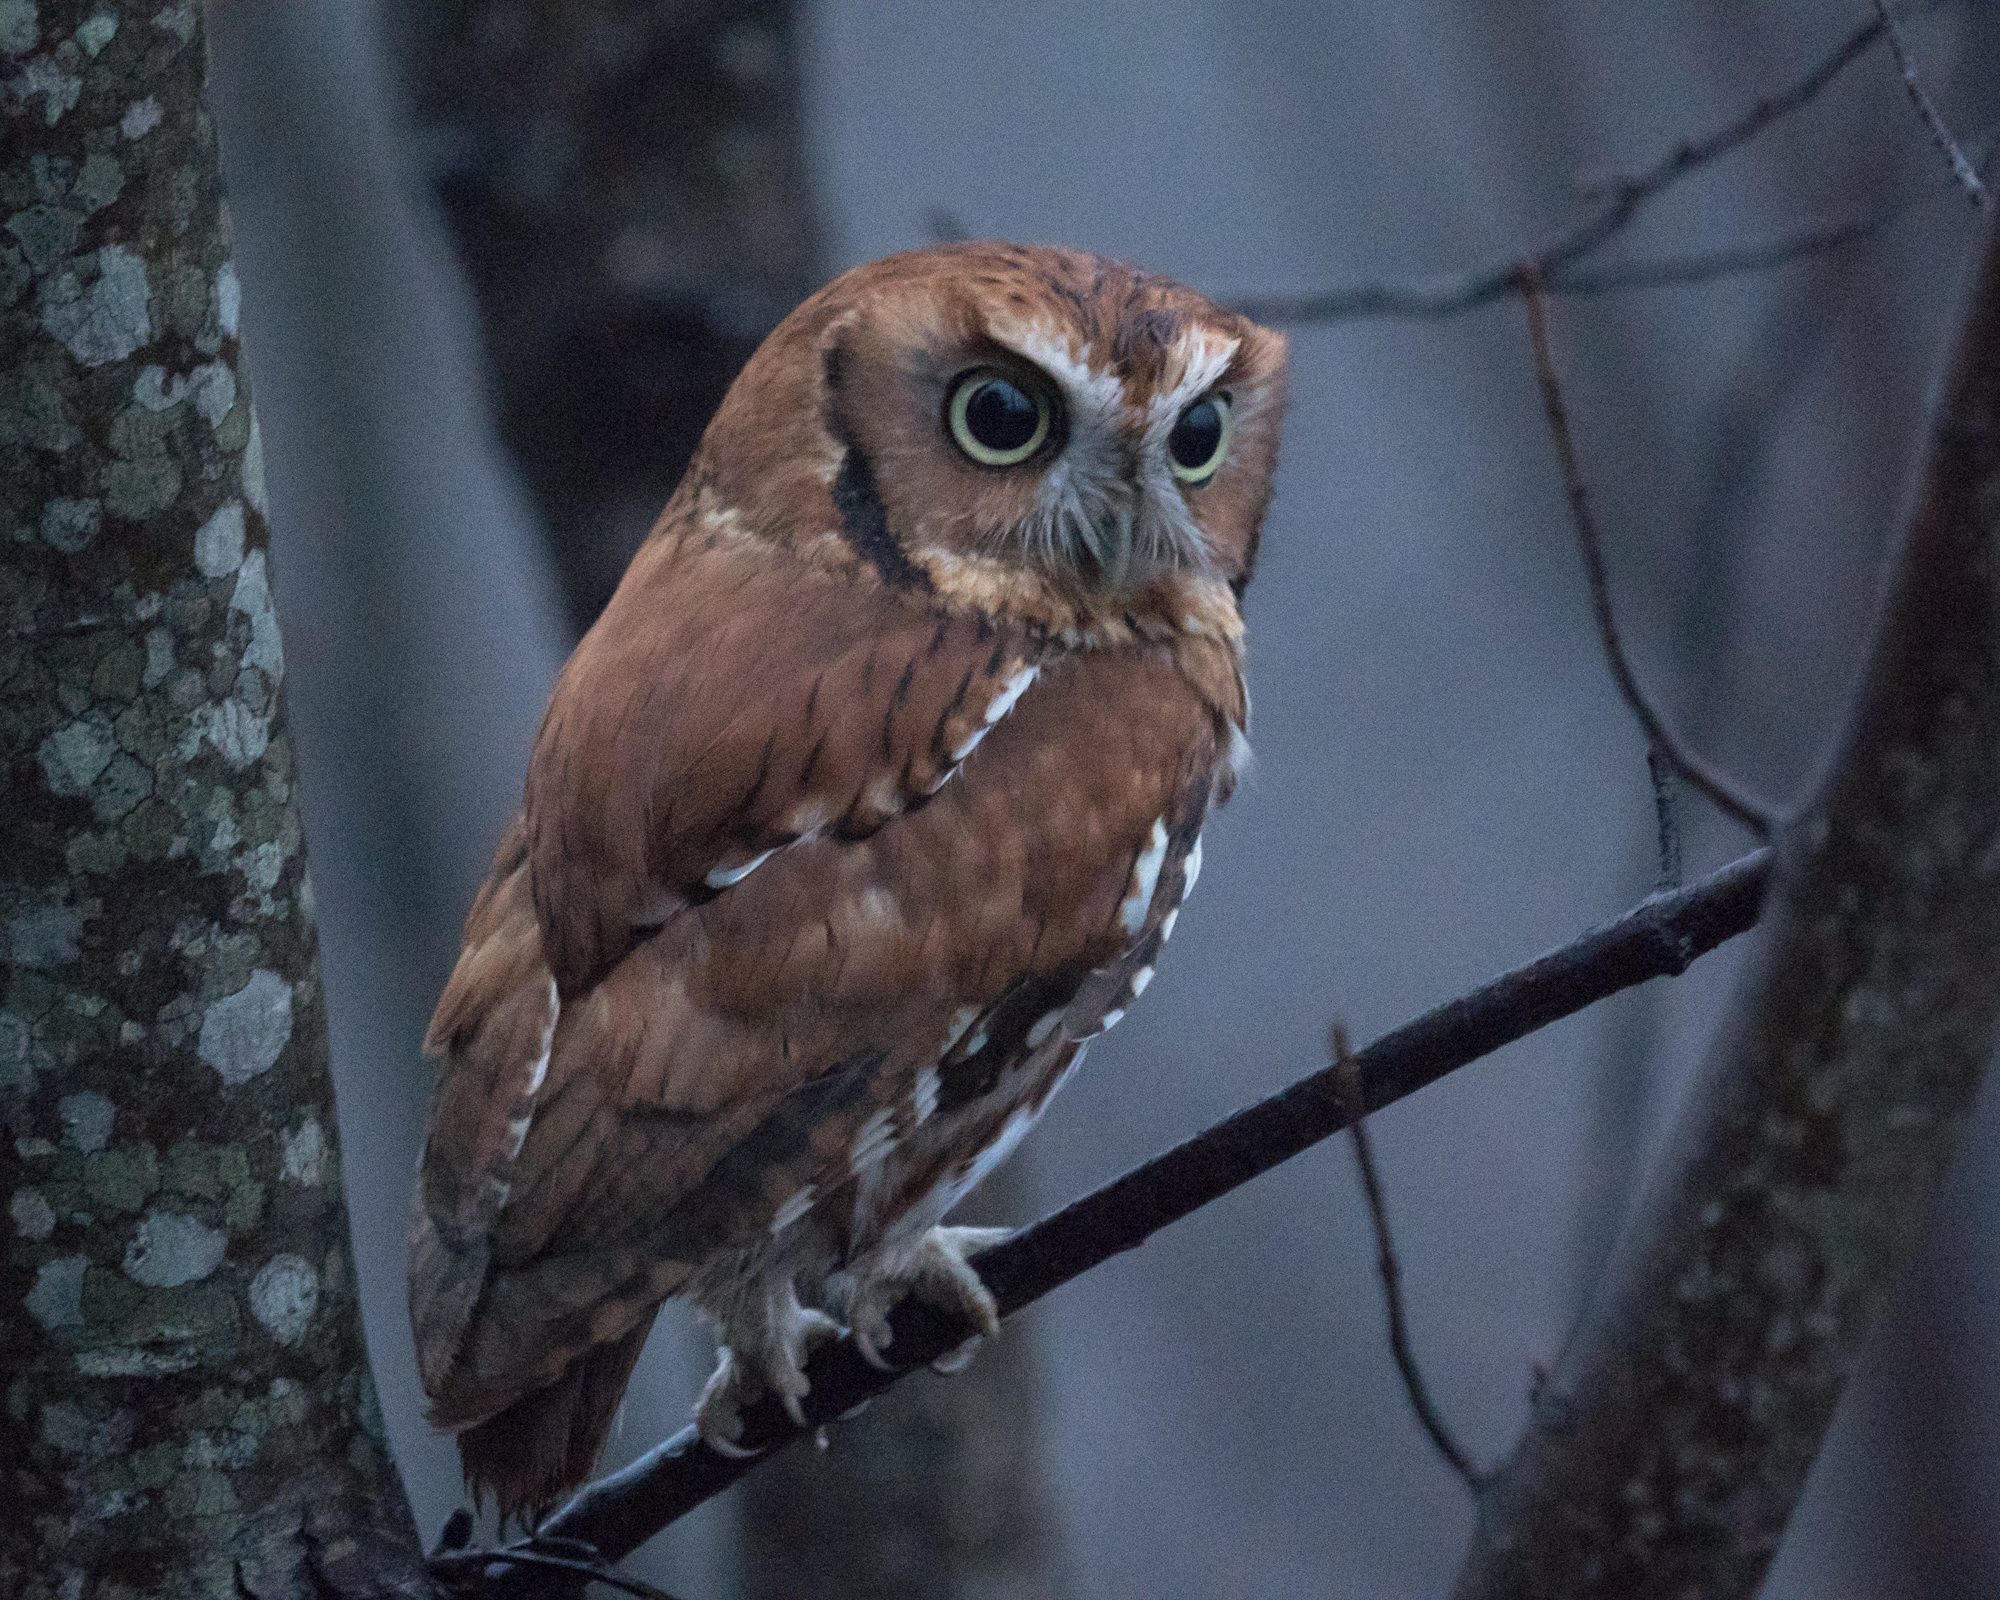 Red Morph Screech Owl after dark. 400mm at f/6.3, 1/13s, and ISO 6400. Kudos to the image stabilzer and ability to focus in almost no light.